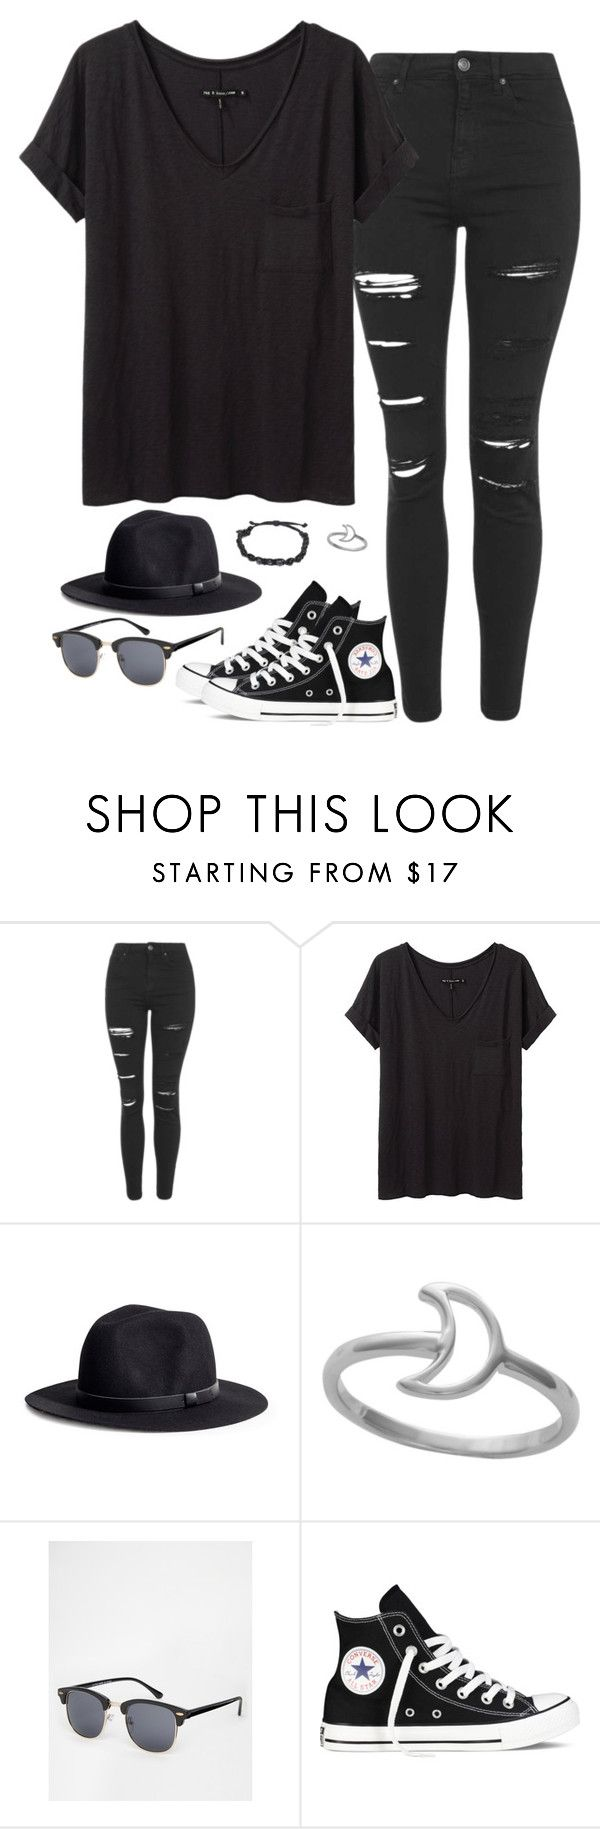 """""""Untitled #12"""" by mikasma ❤ liked on Polyvore featuring Topshop, rag & bone/JEAN, H&M, ASOS and Converse"""